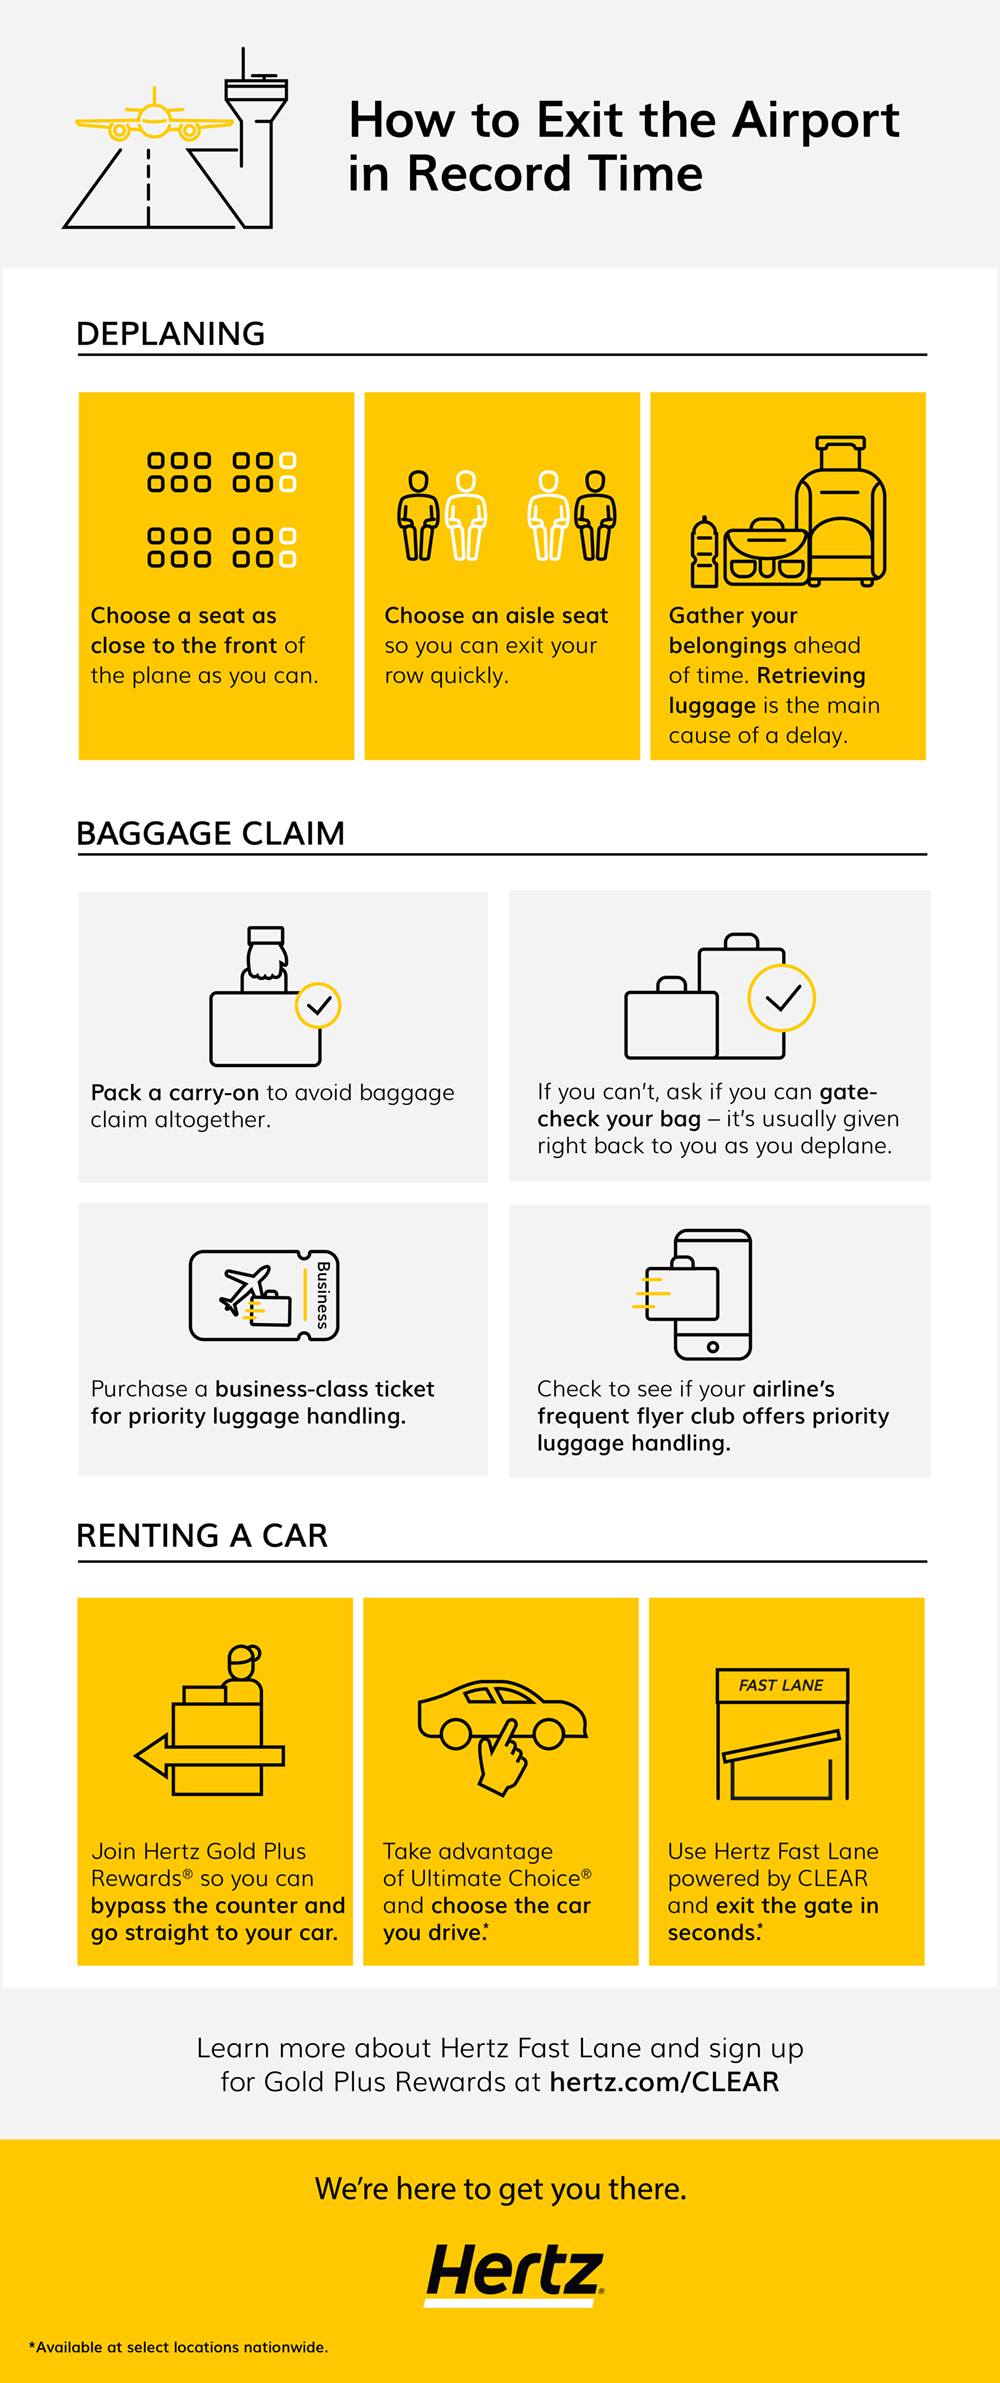 If you like to move fast when you're traveling, check out this #infographic for all the ways you can save time after your plane lands at your destination.